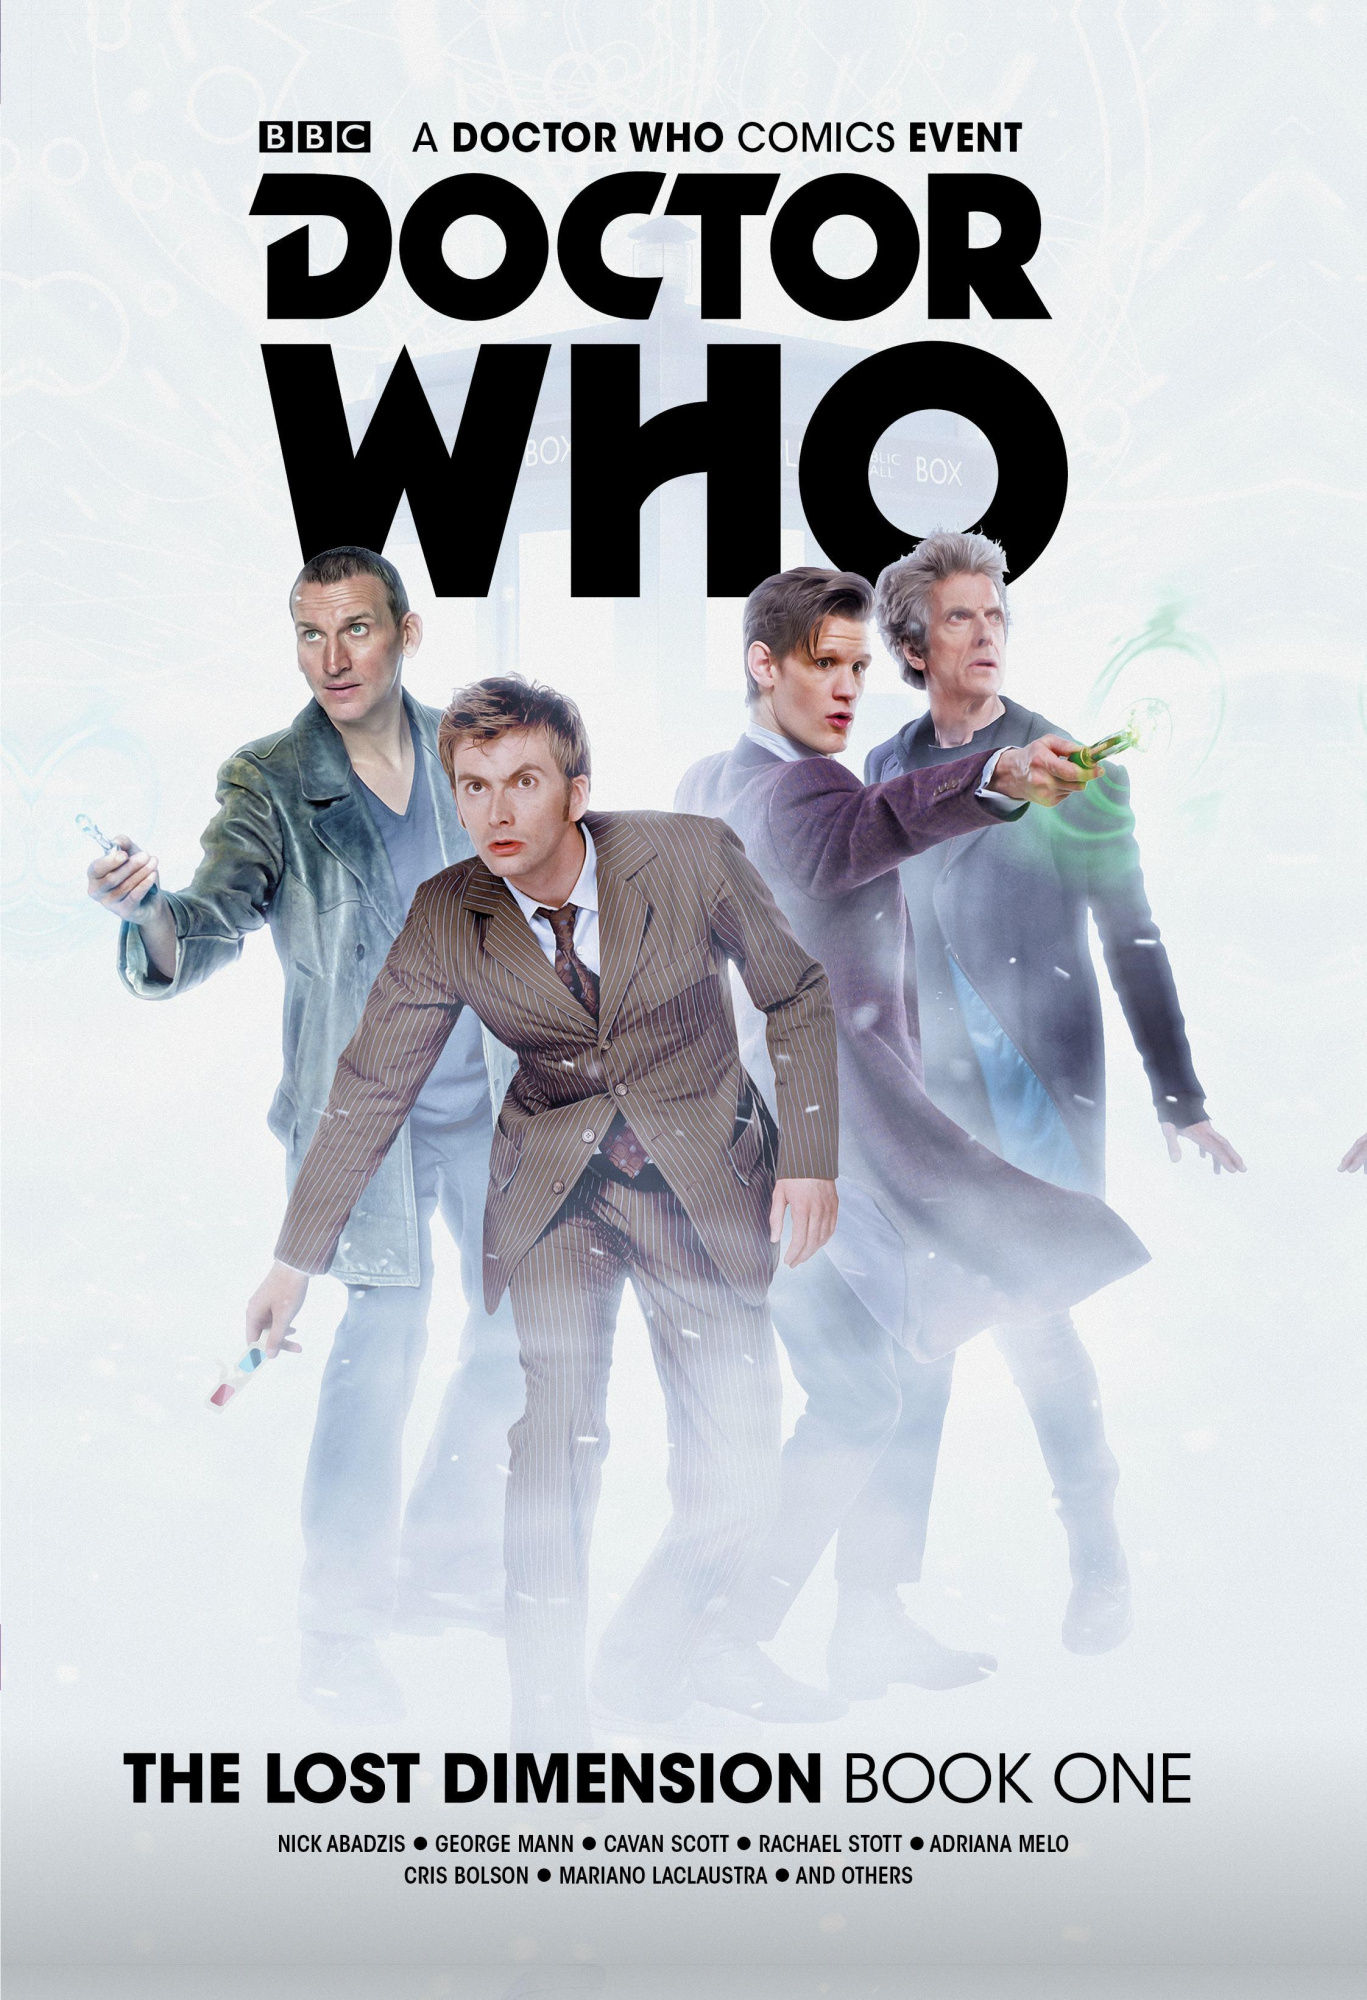 Doctor Who: The Lost Dimension Volume 1 by Nick Abadzis, ISBN: 9781785863462